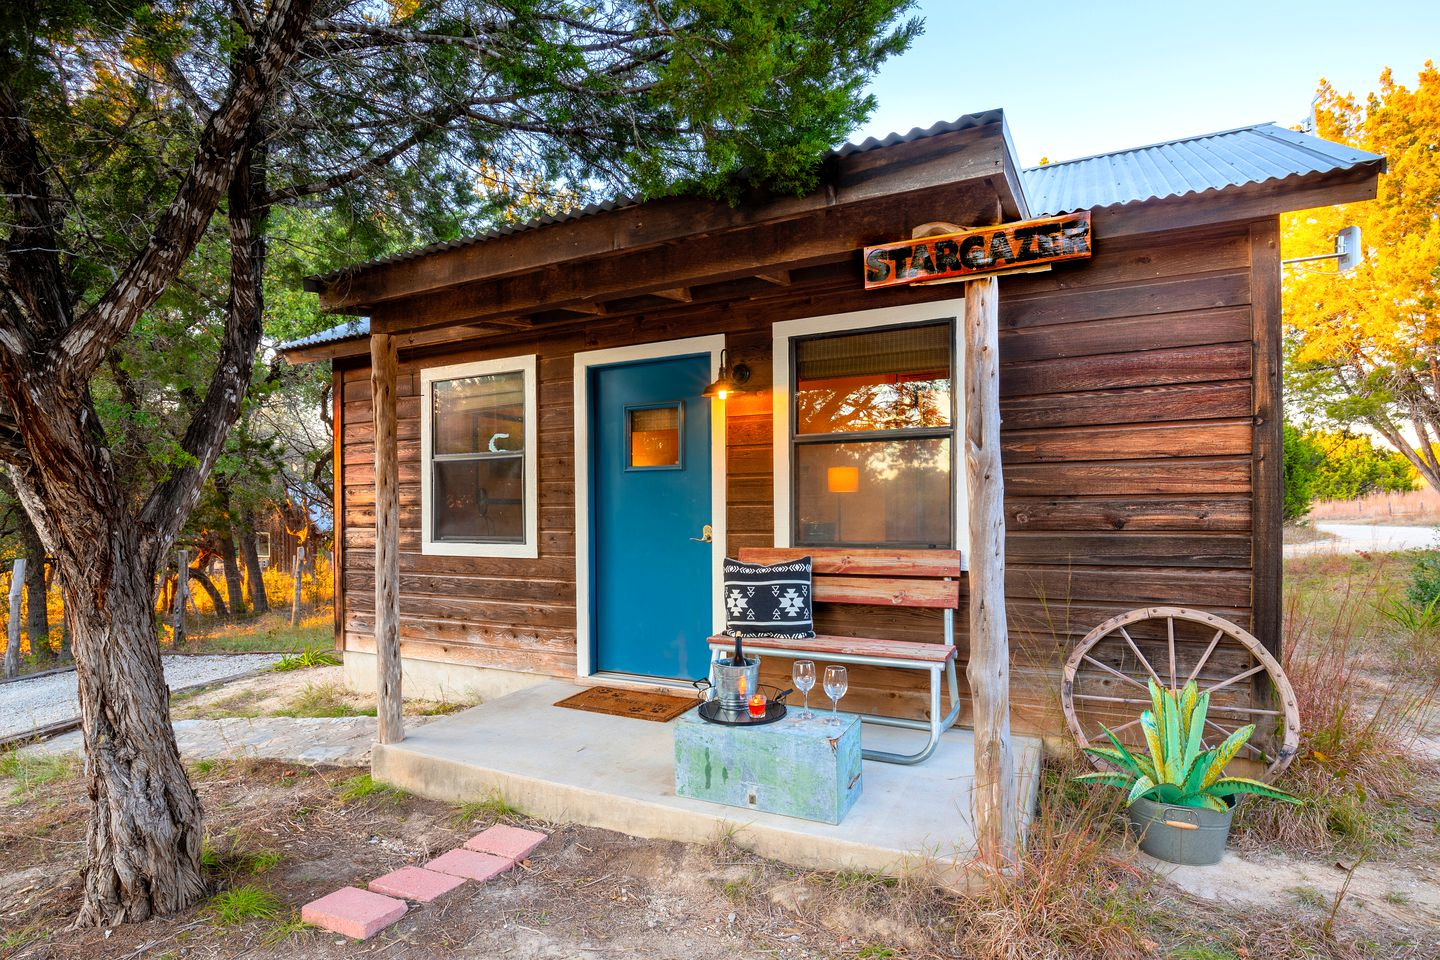 Johnson City accommodation for the best Texas Hill Country glamping!